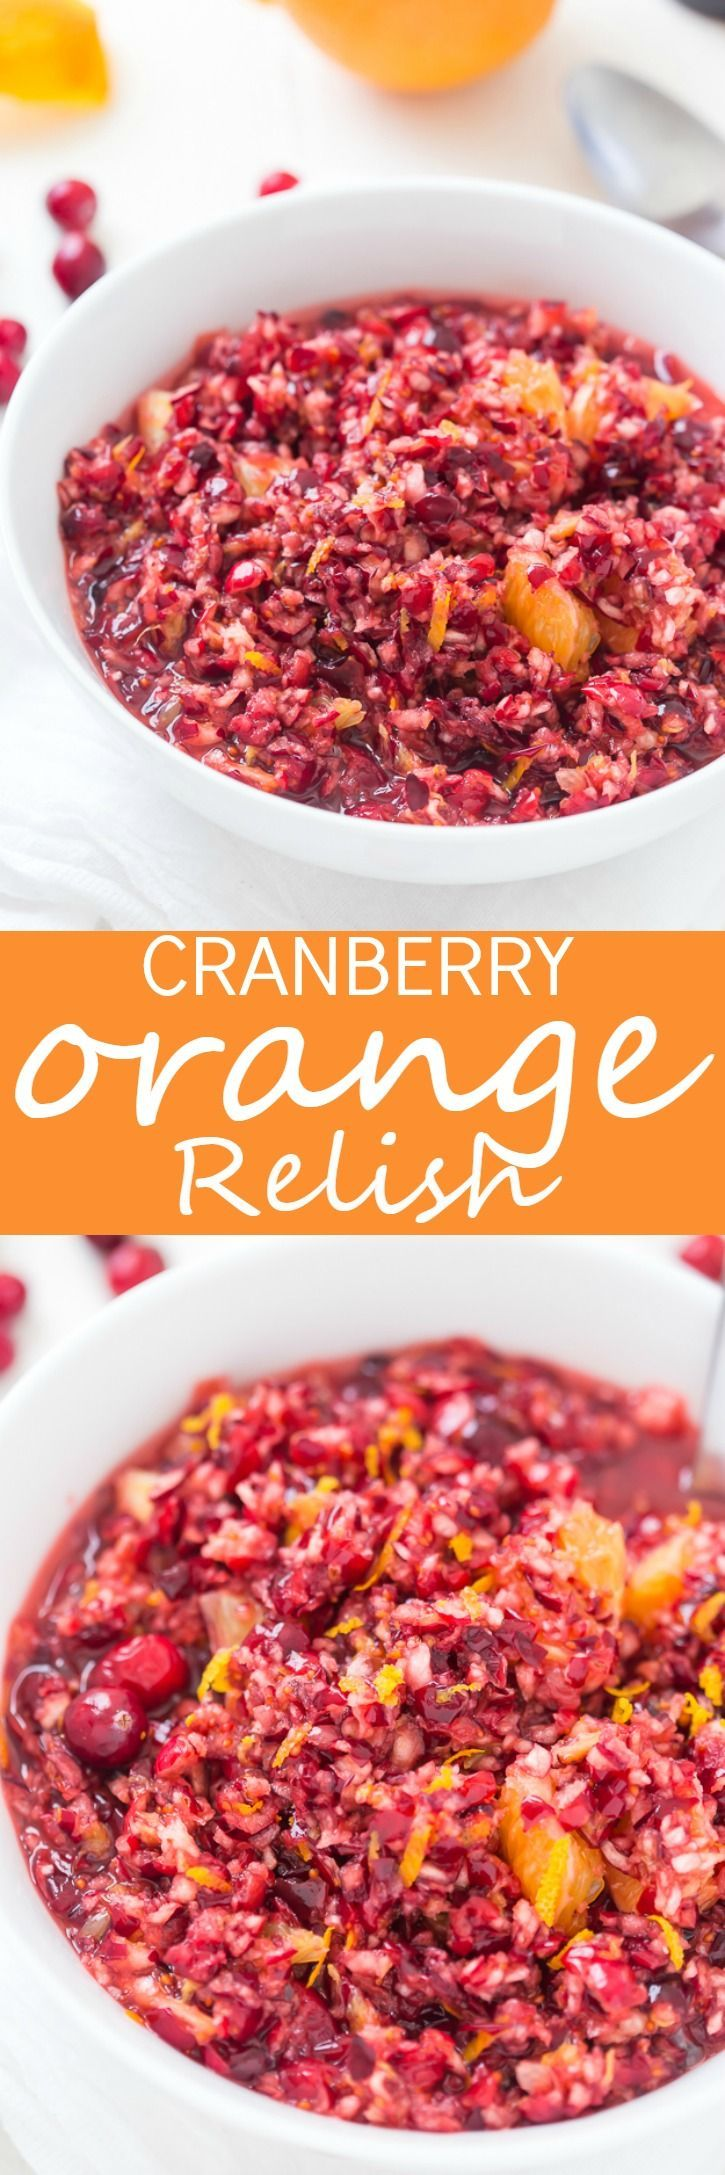 This sweet, but tart Cranberry Orange Relish Recipe is so easy and perfect for the holidays! Take a break from your traditionally served cranberry sauce and make this fresh relish instead.   via @galmission